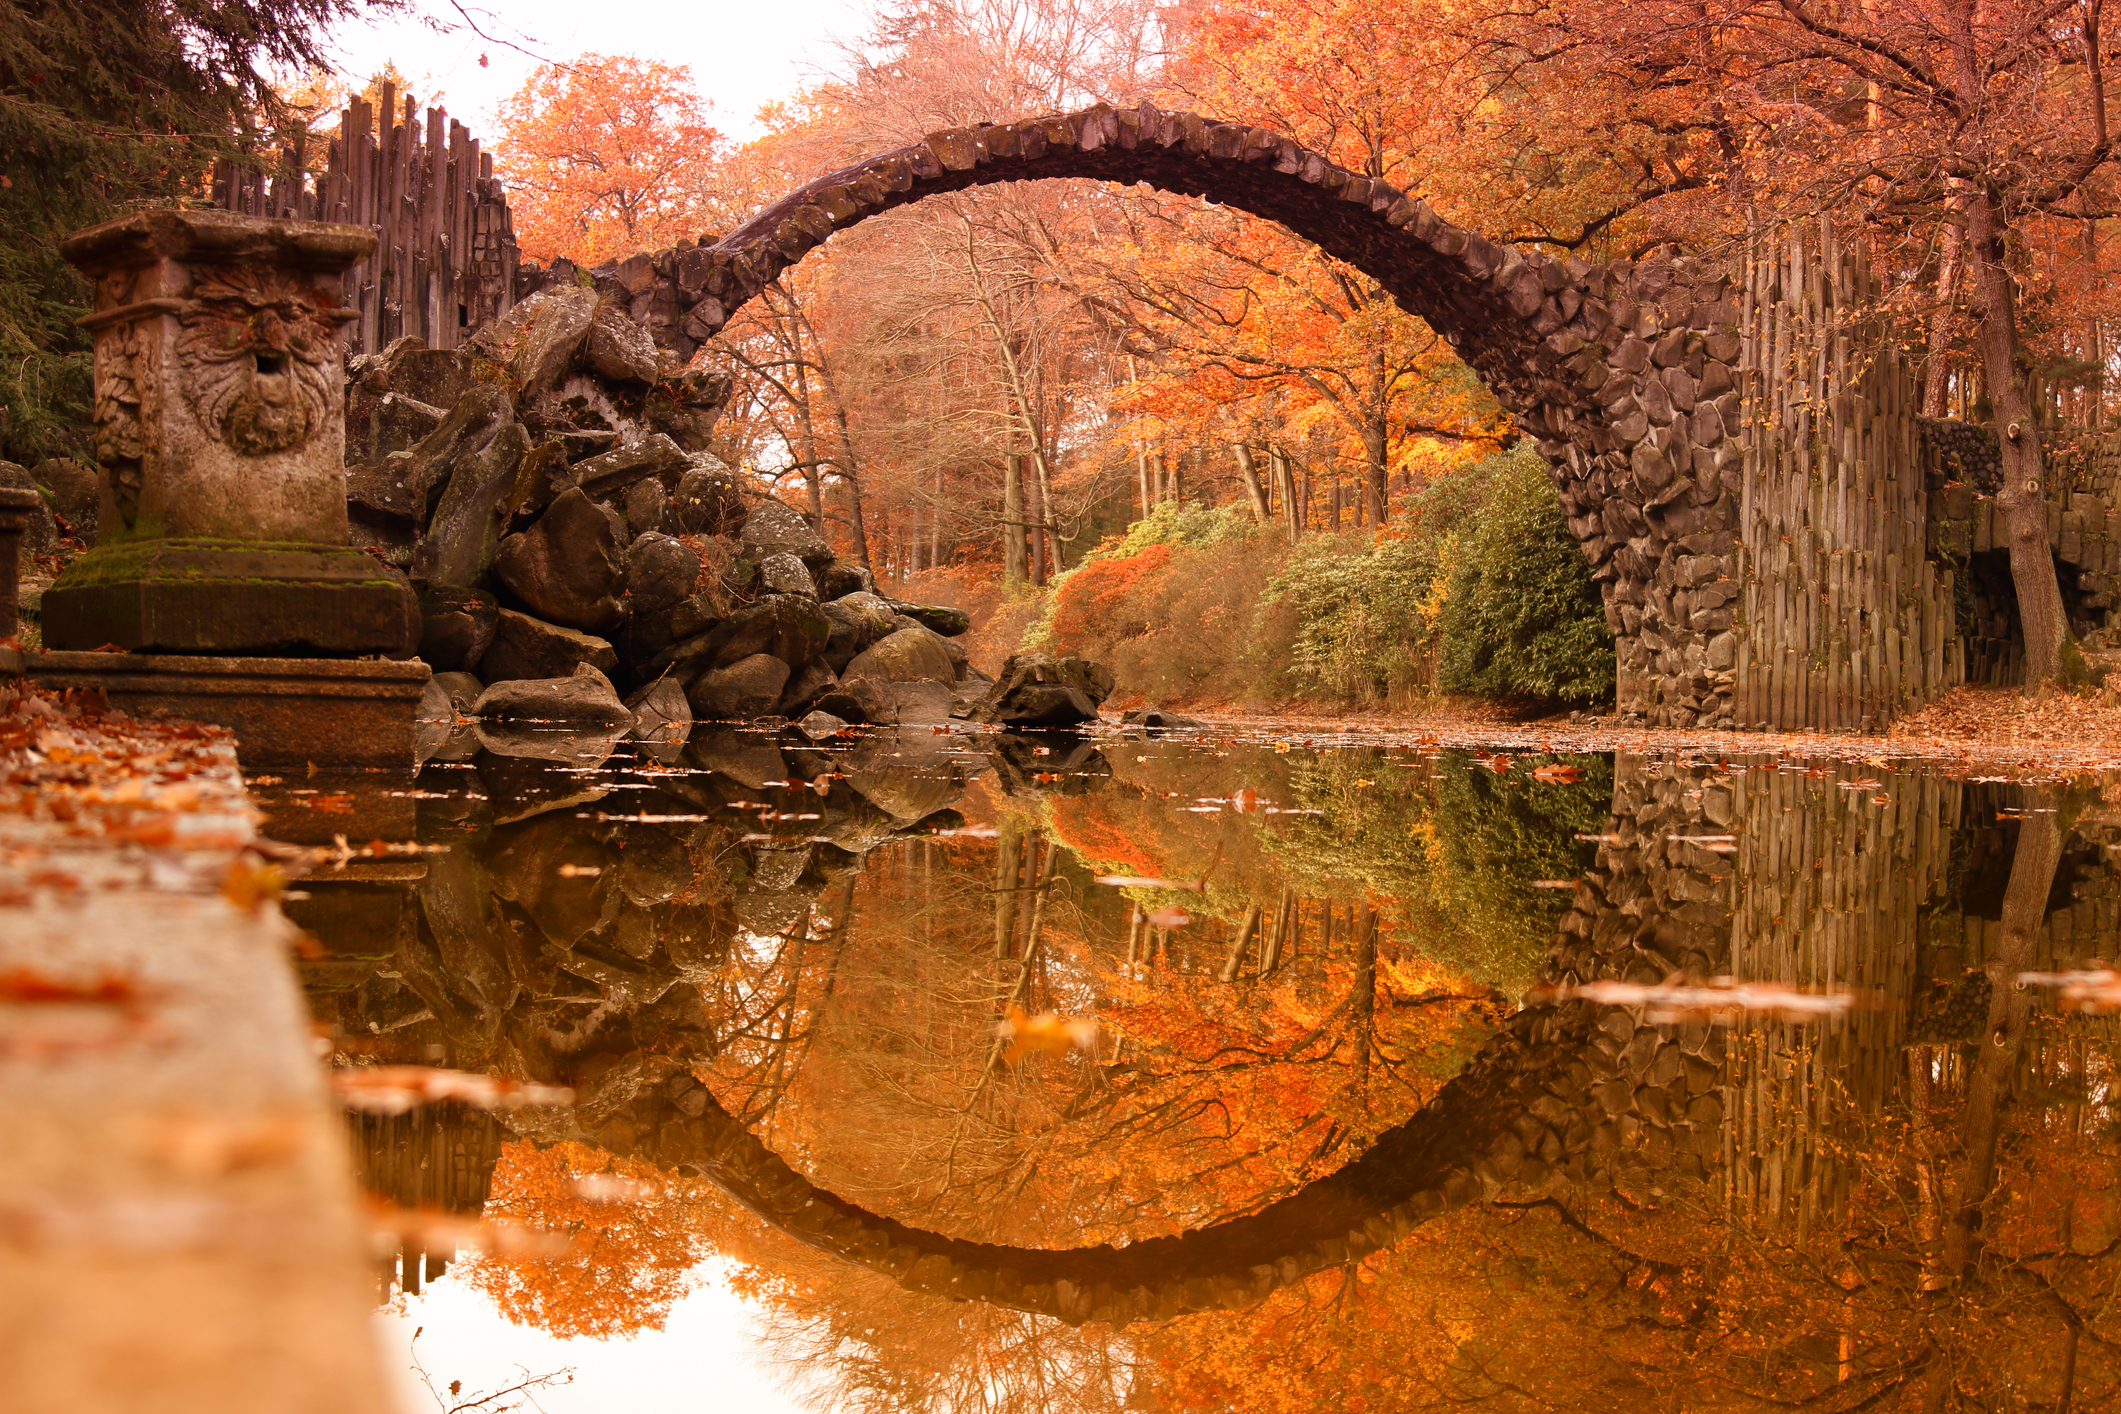 Rakotz-bridge-(Rakotzbrucke,-Devil's-Bridge)-in-Kromlau,-Saxony,-Germany.-Colorful-autumn-622528828_2125x1416